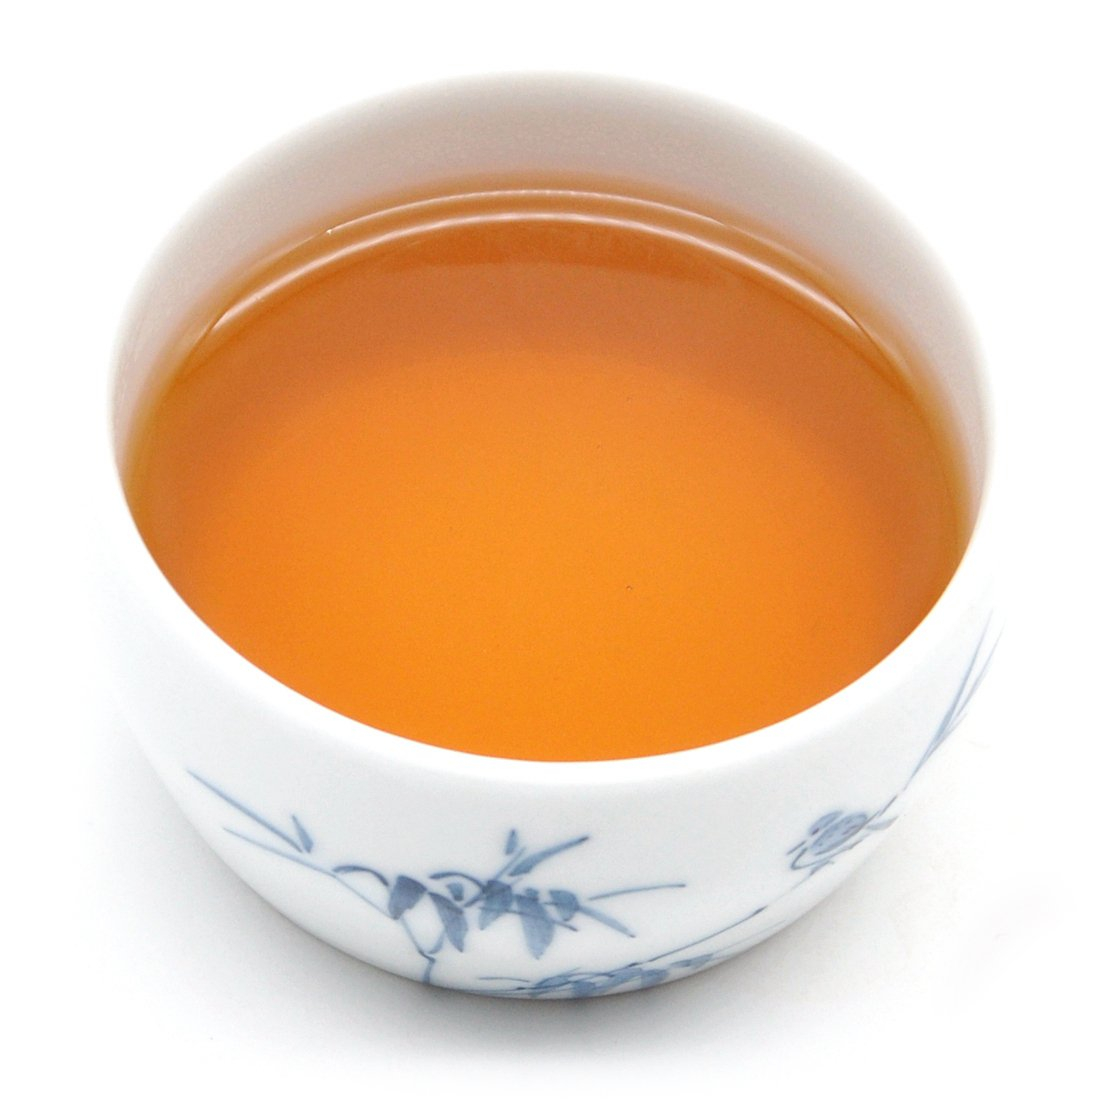 Cha Wu-[B] Lapsang Souchong Black Tea Loose Leaf,3.5oz/100g,No Smoky Taste,WuYi HongCha,Chinese KungFu Red Tea